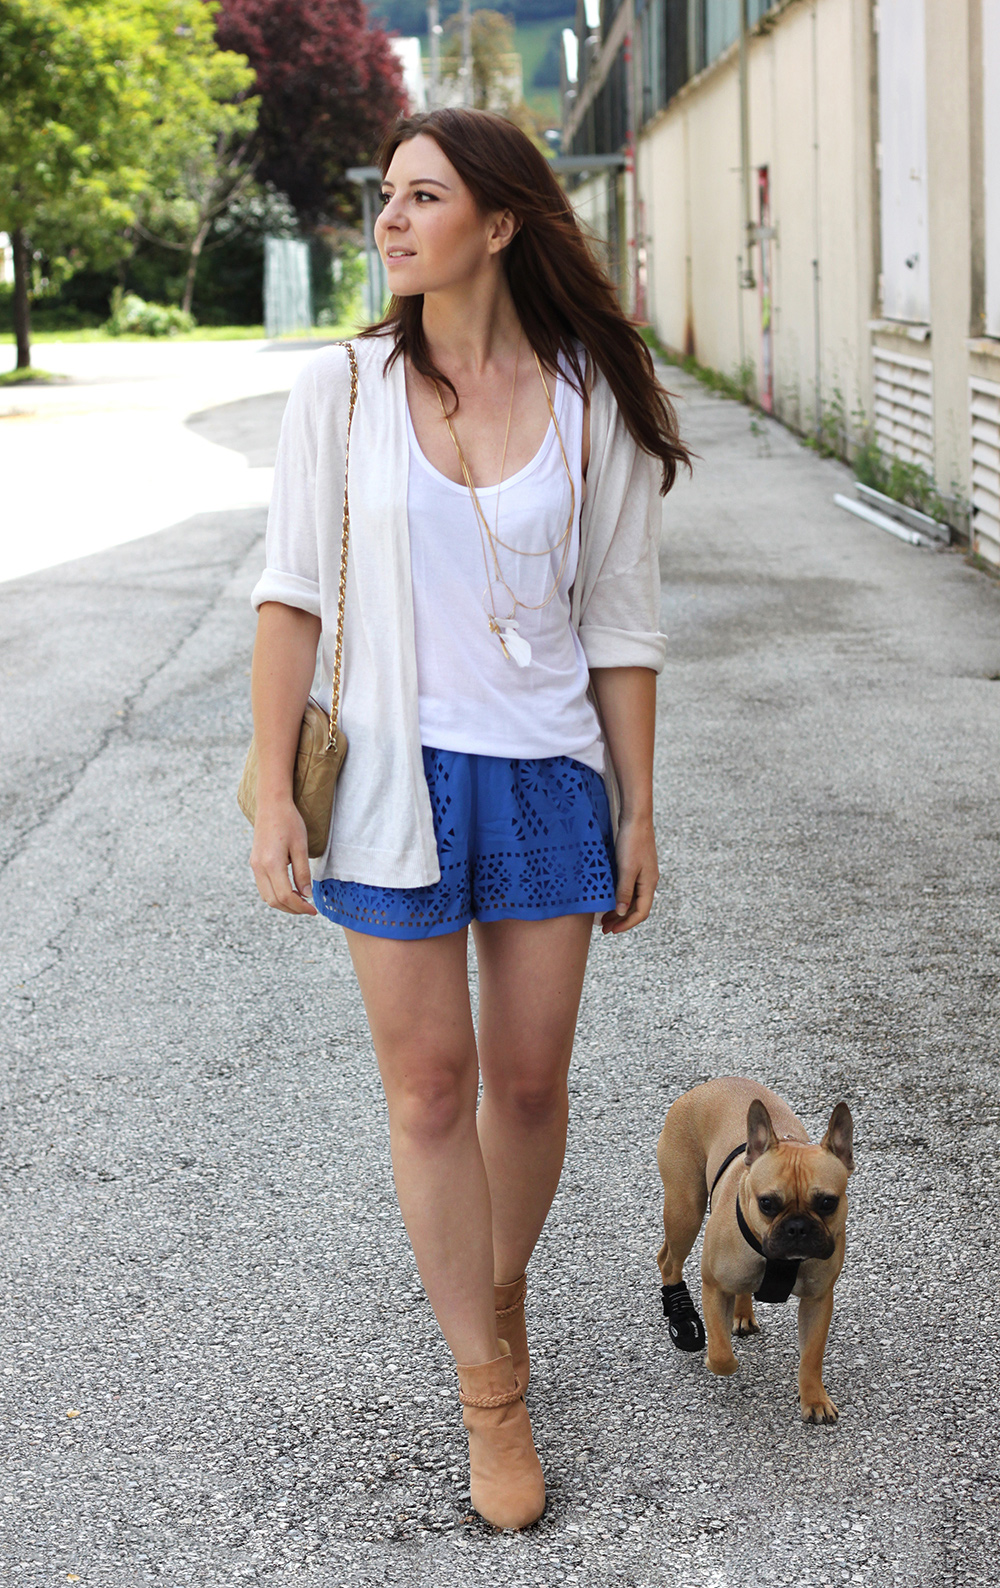 who is mocca, fashionblog tirol, fashionblog österreich, blaue shorts satin plisse blackfive, leinen shirt primark, weiter cardigan H&M, Boots Kaviar Gauche for Zalando, Chanel Vintage Tasche beige, layered necklaces